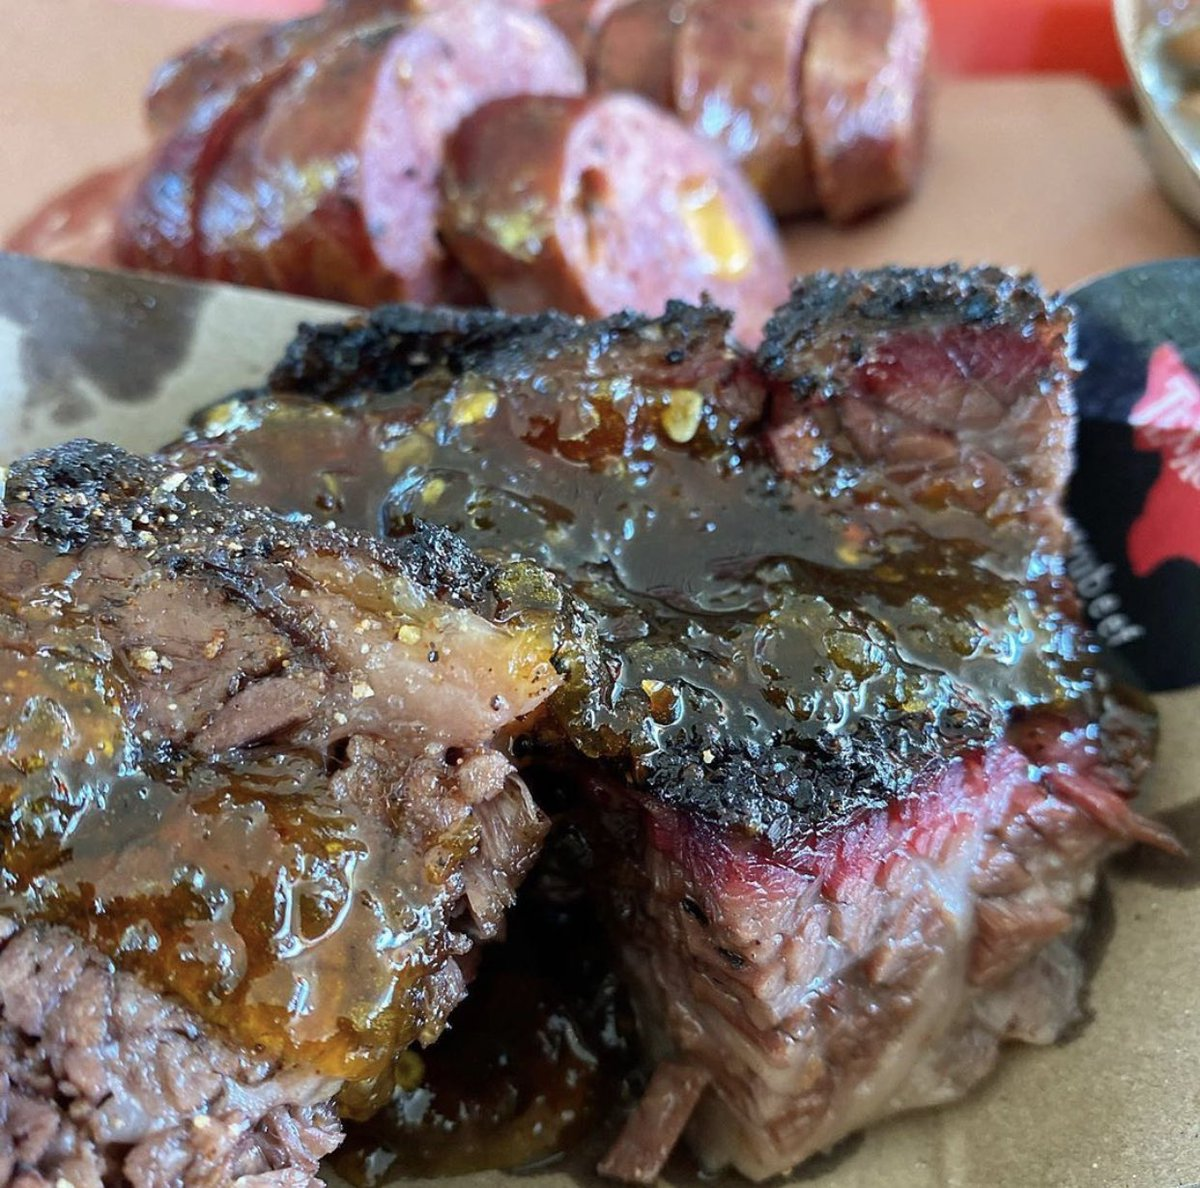 Thanks @onebeardtwobellies for this Wagyuey Burnt Ends shot with our in house jalapeño jam! . 📷: @onebeardtwobellies  . #derekallansbbq #wagyubeef #wagyu #burntends #burntend https://t.co/nE4QclsQ79